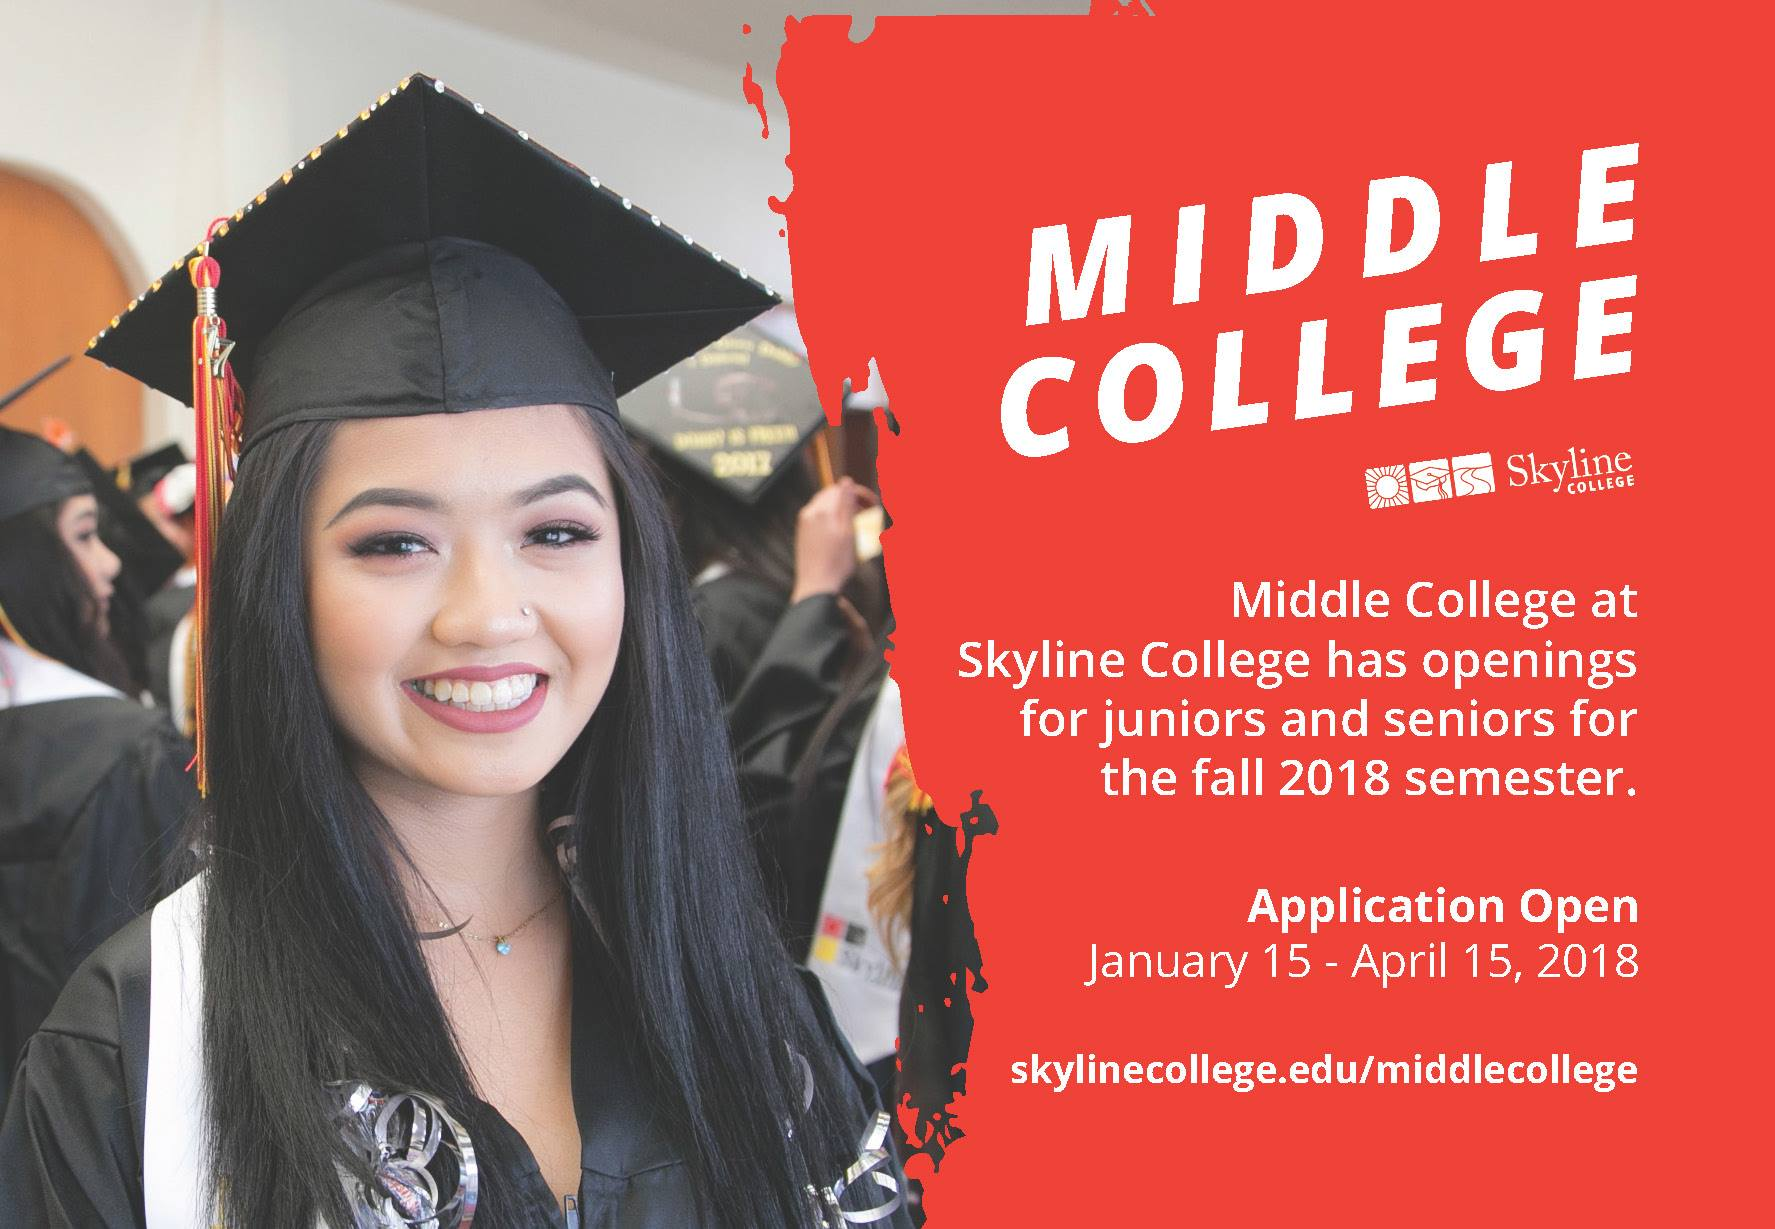 Middle College at Skyline College Accepting 2018-2019 Applications Now